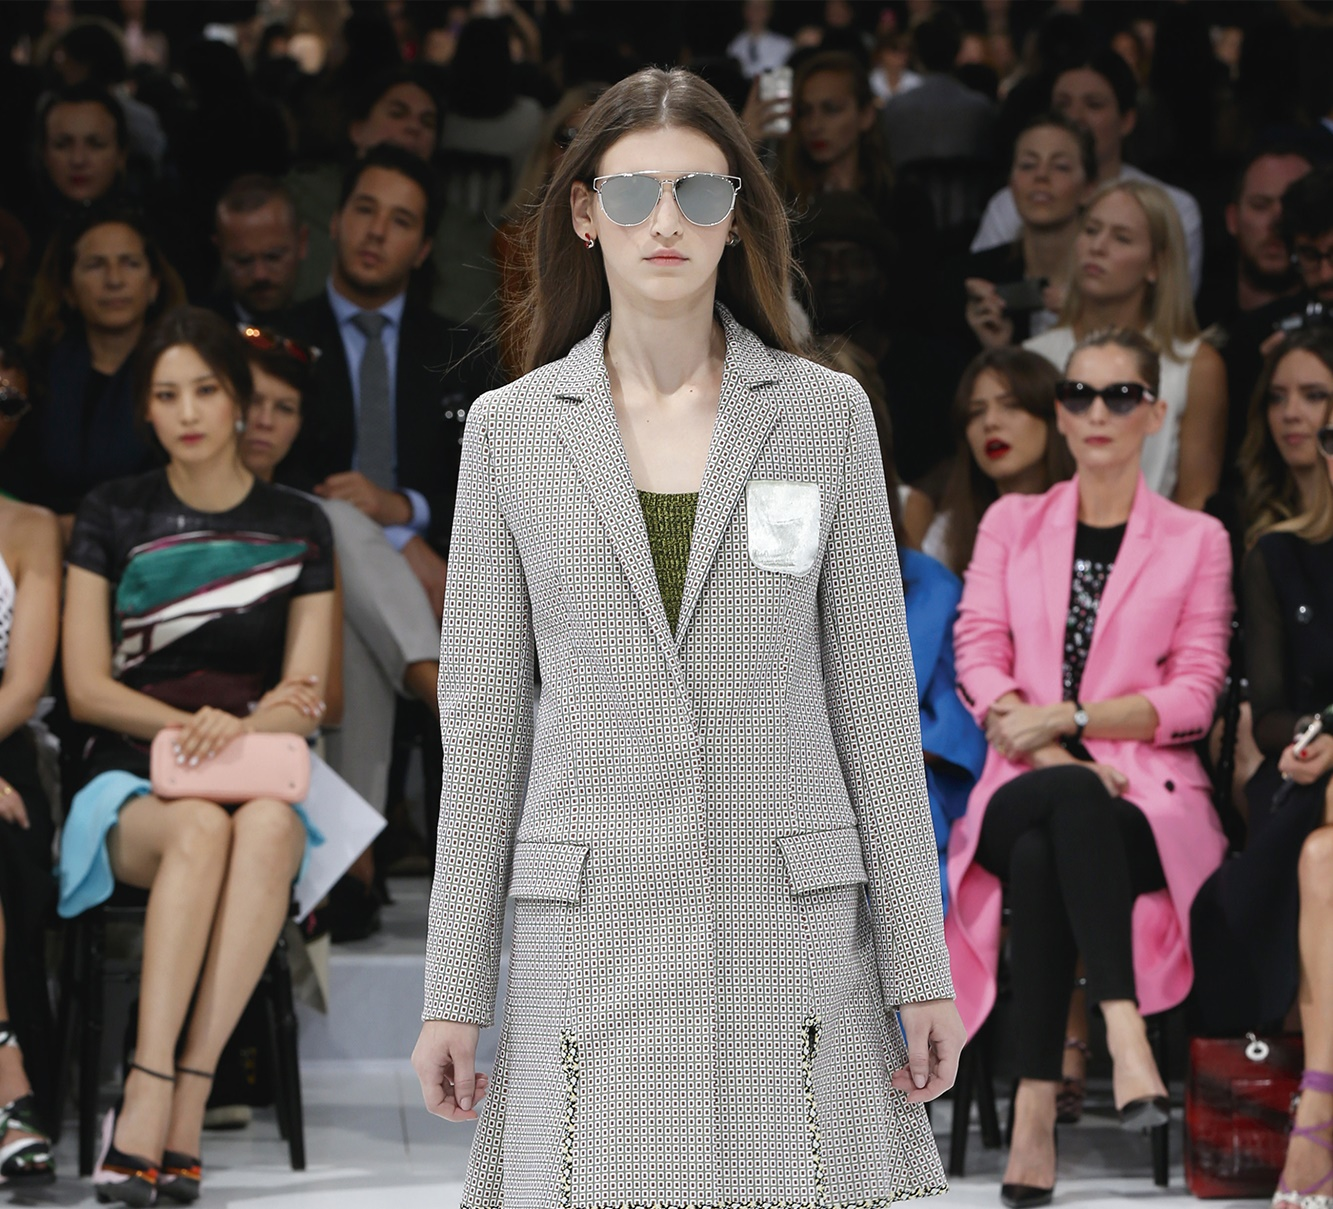 christian-dior-spring-summer-RTW-collection (11)